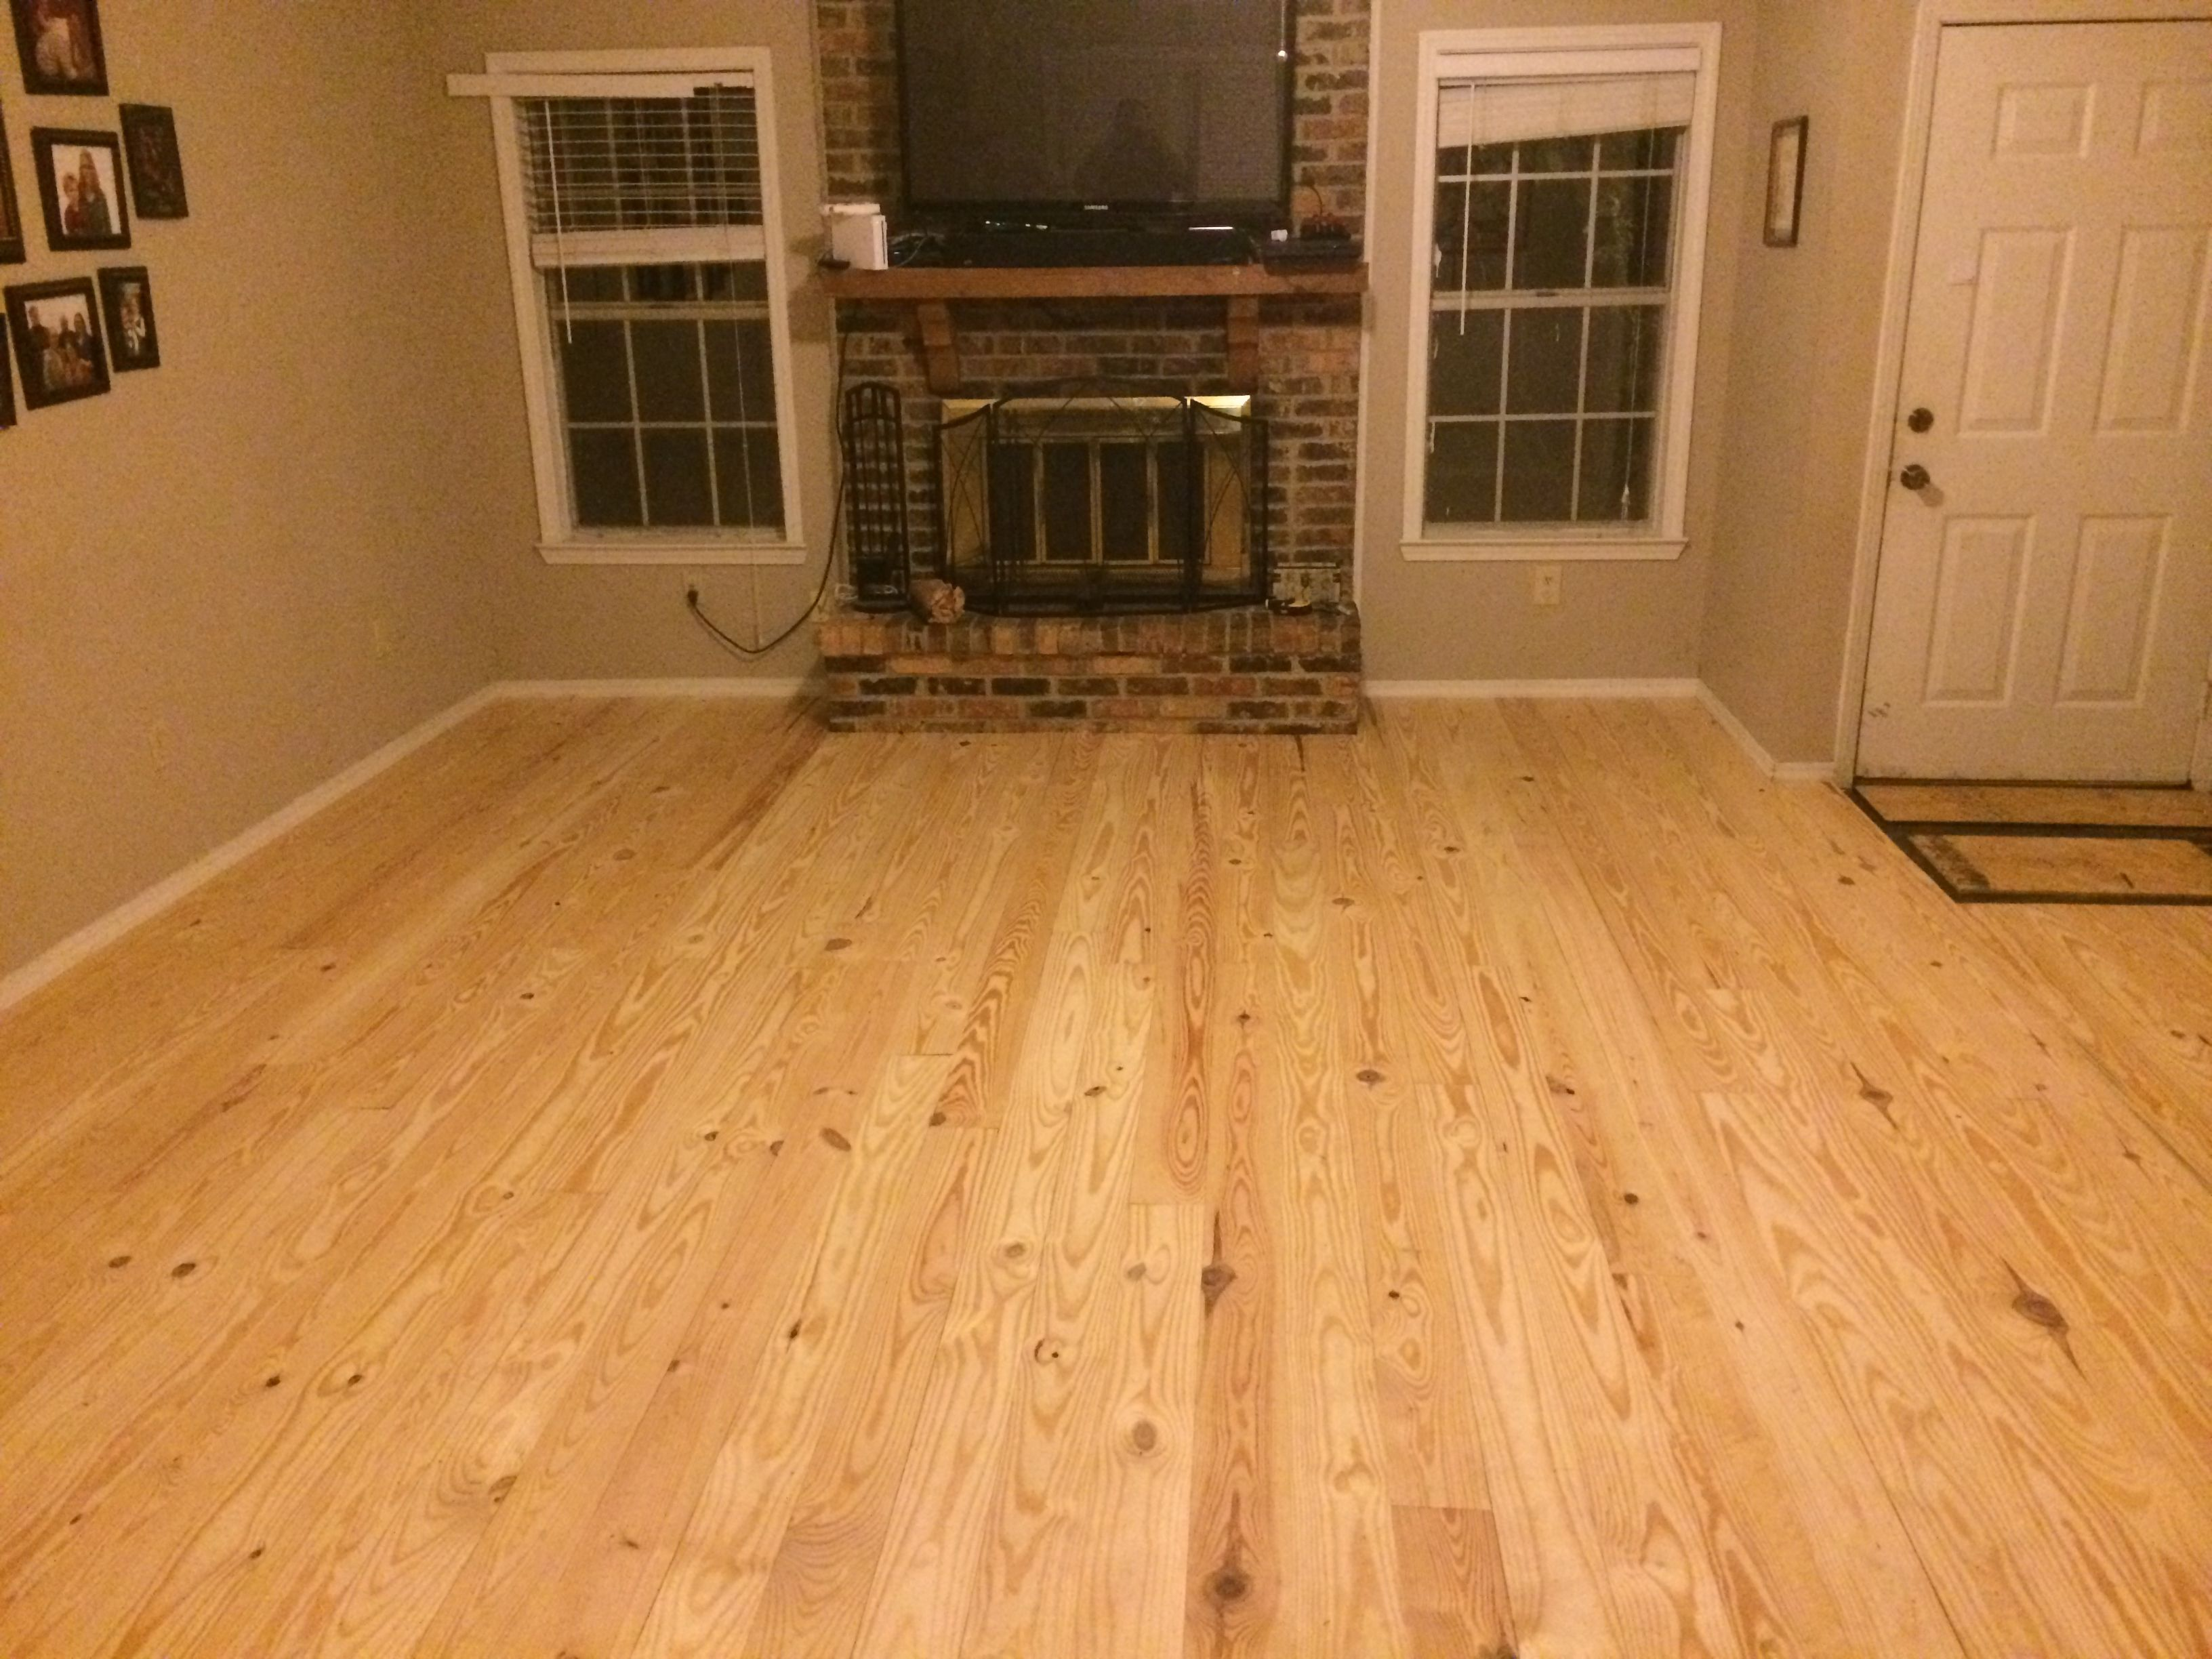 Rustic Knotty Pine Flooring From Southern Wood Specialties In